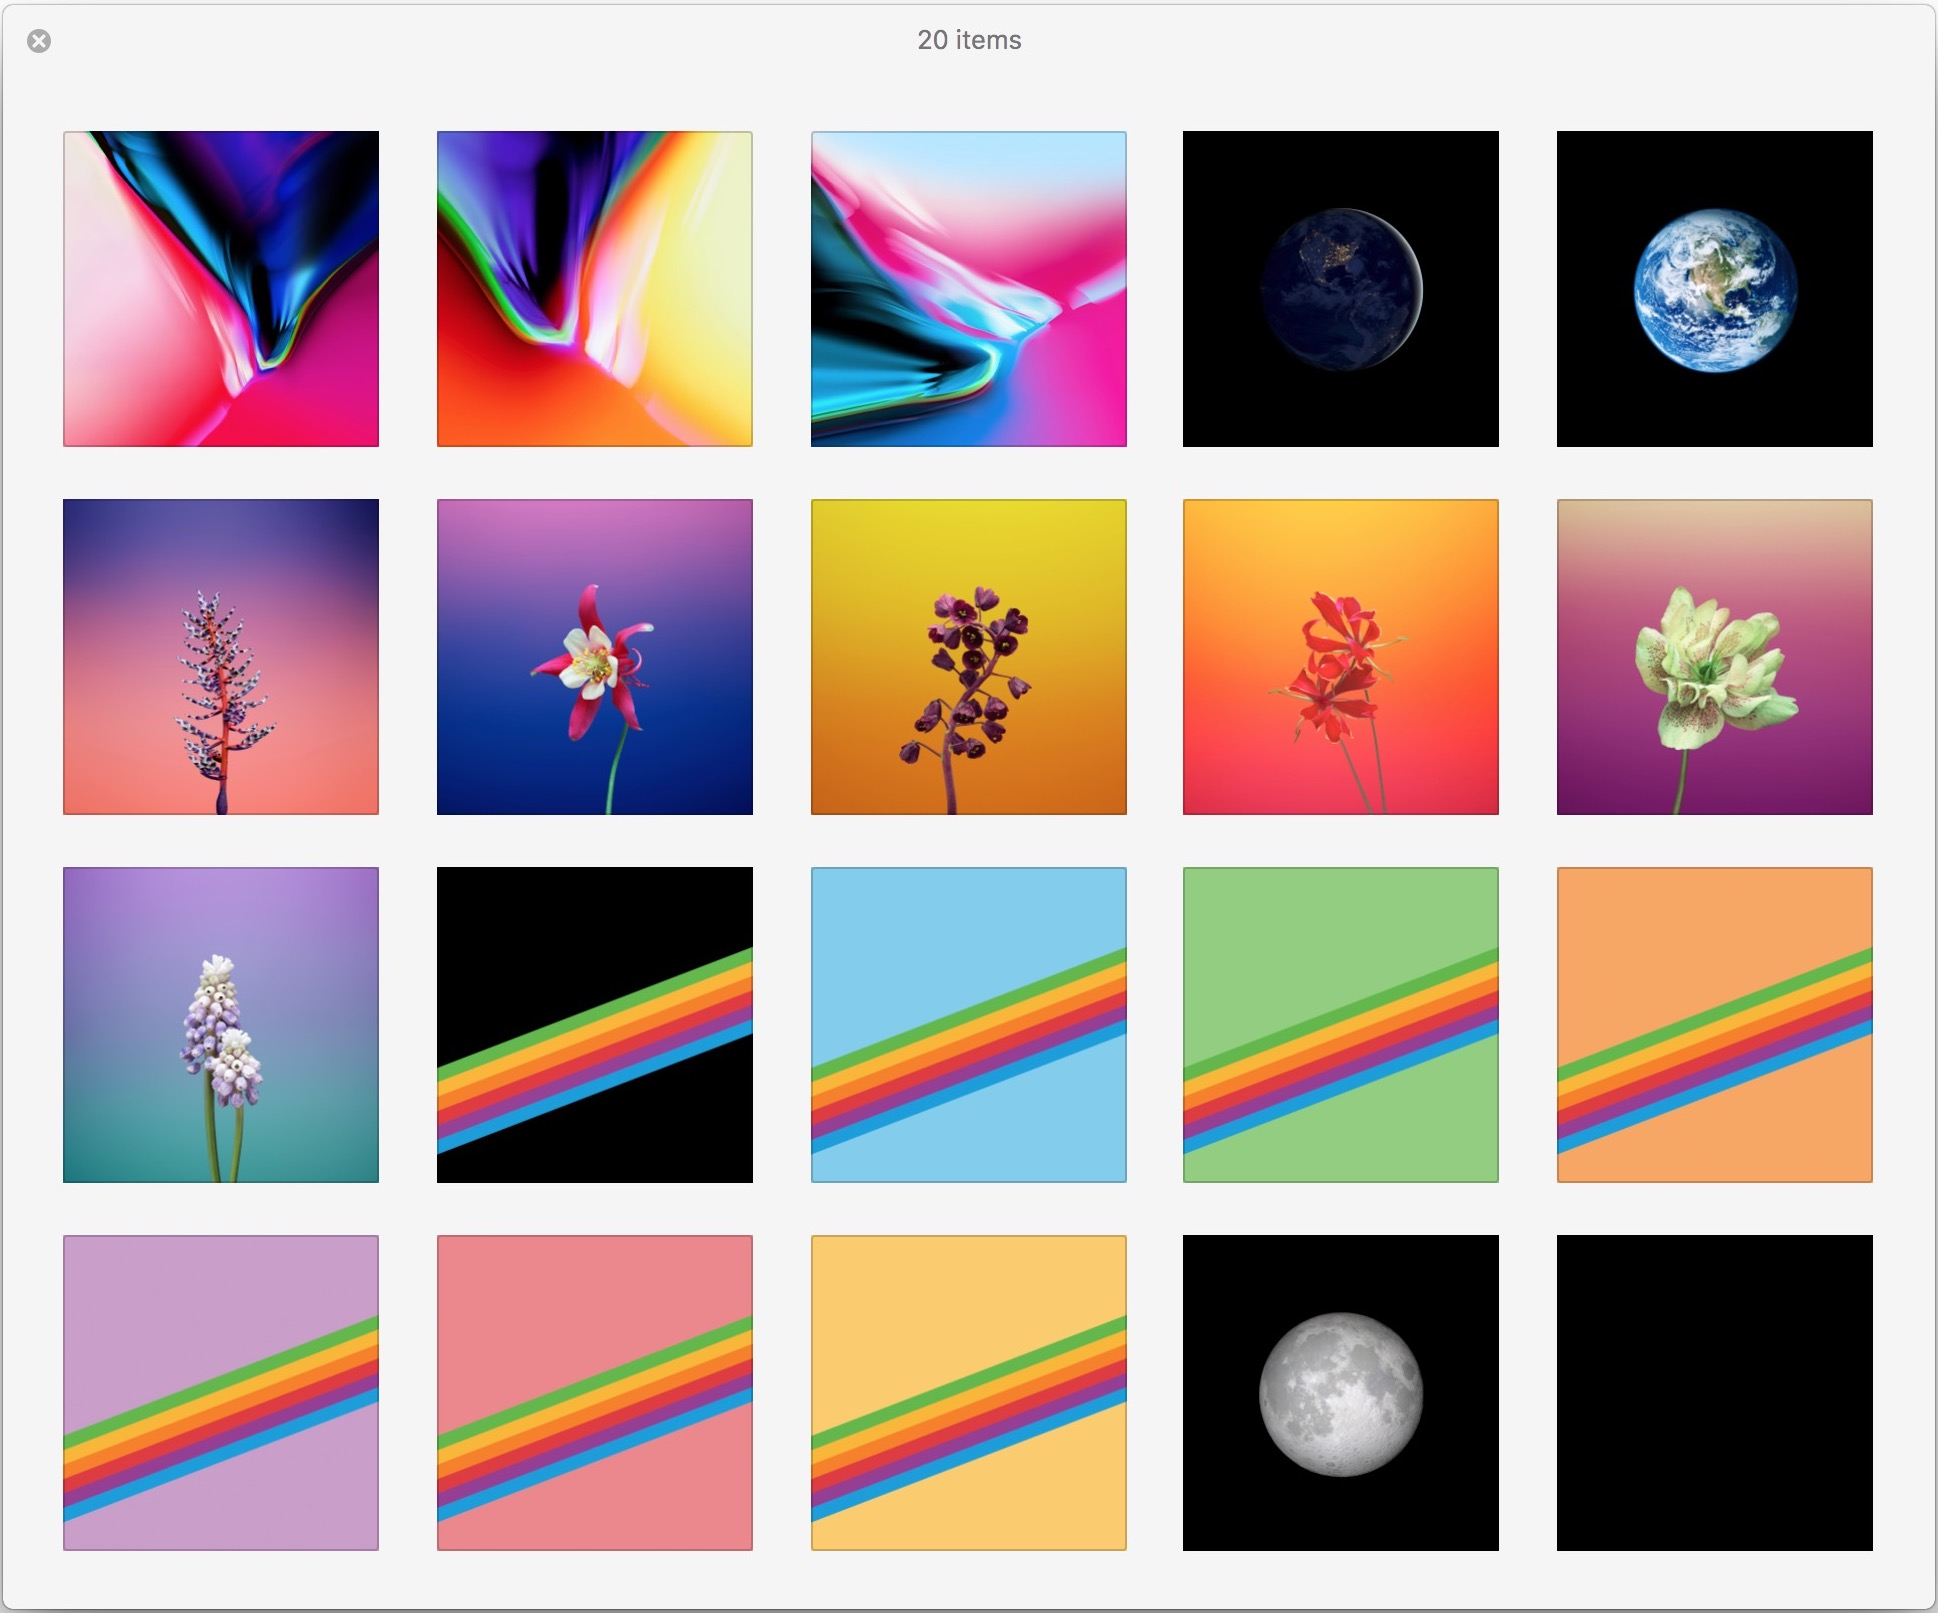 Get The 20 New Ios 11 Wallpapers Now Osxdaily